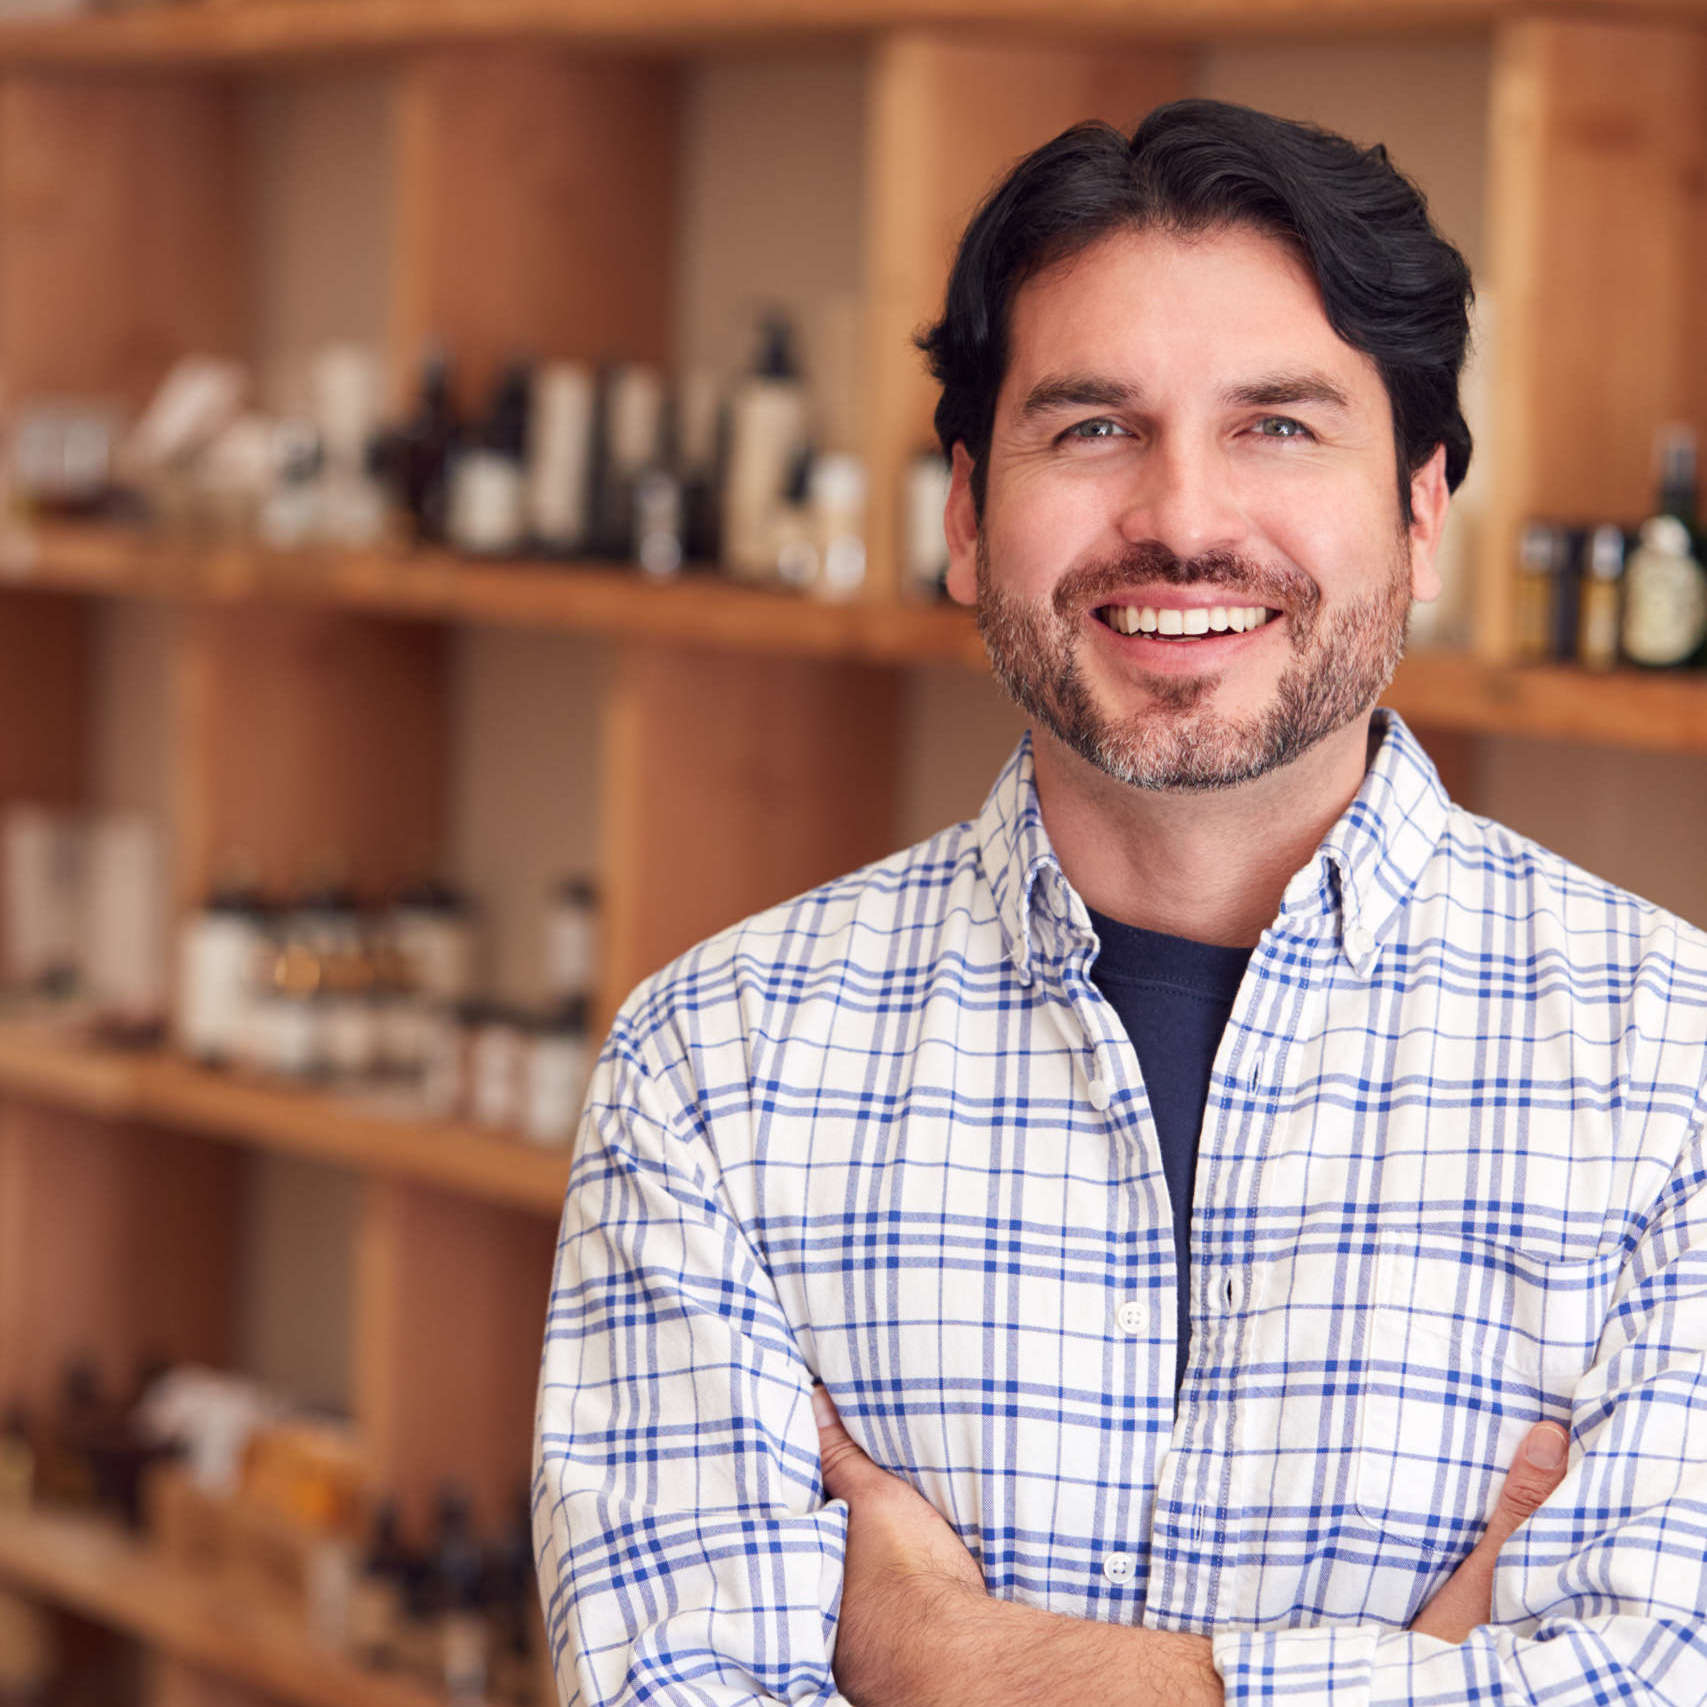 Portrait Of Male Owner Of Gift Store Standing In Front Of Shelves With Cosmetics And Candles